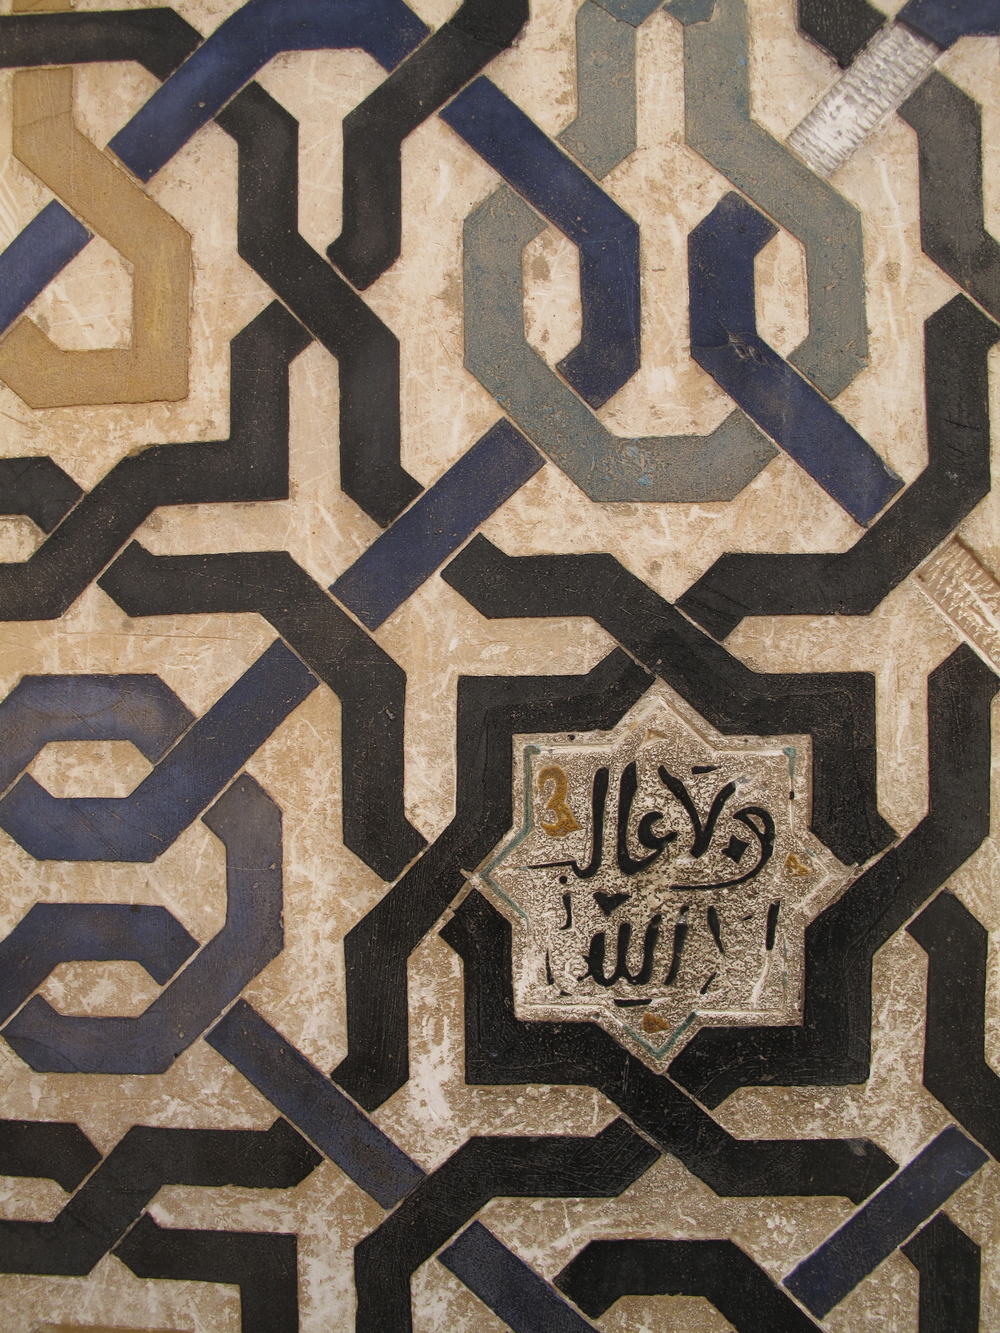 a geometric pattern in the tiles of the Alhambra